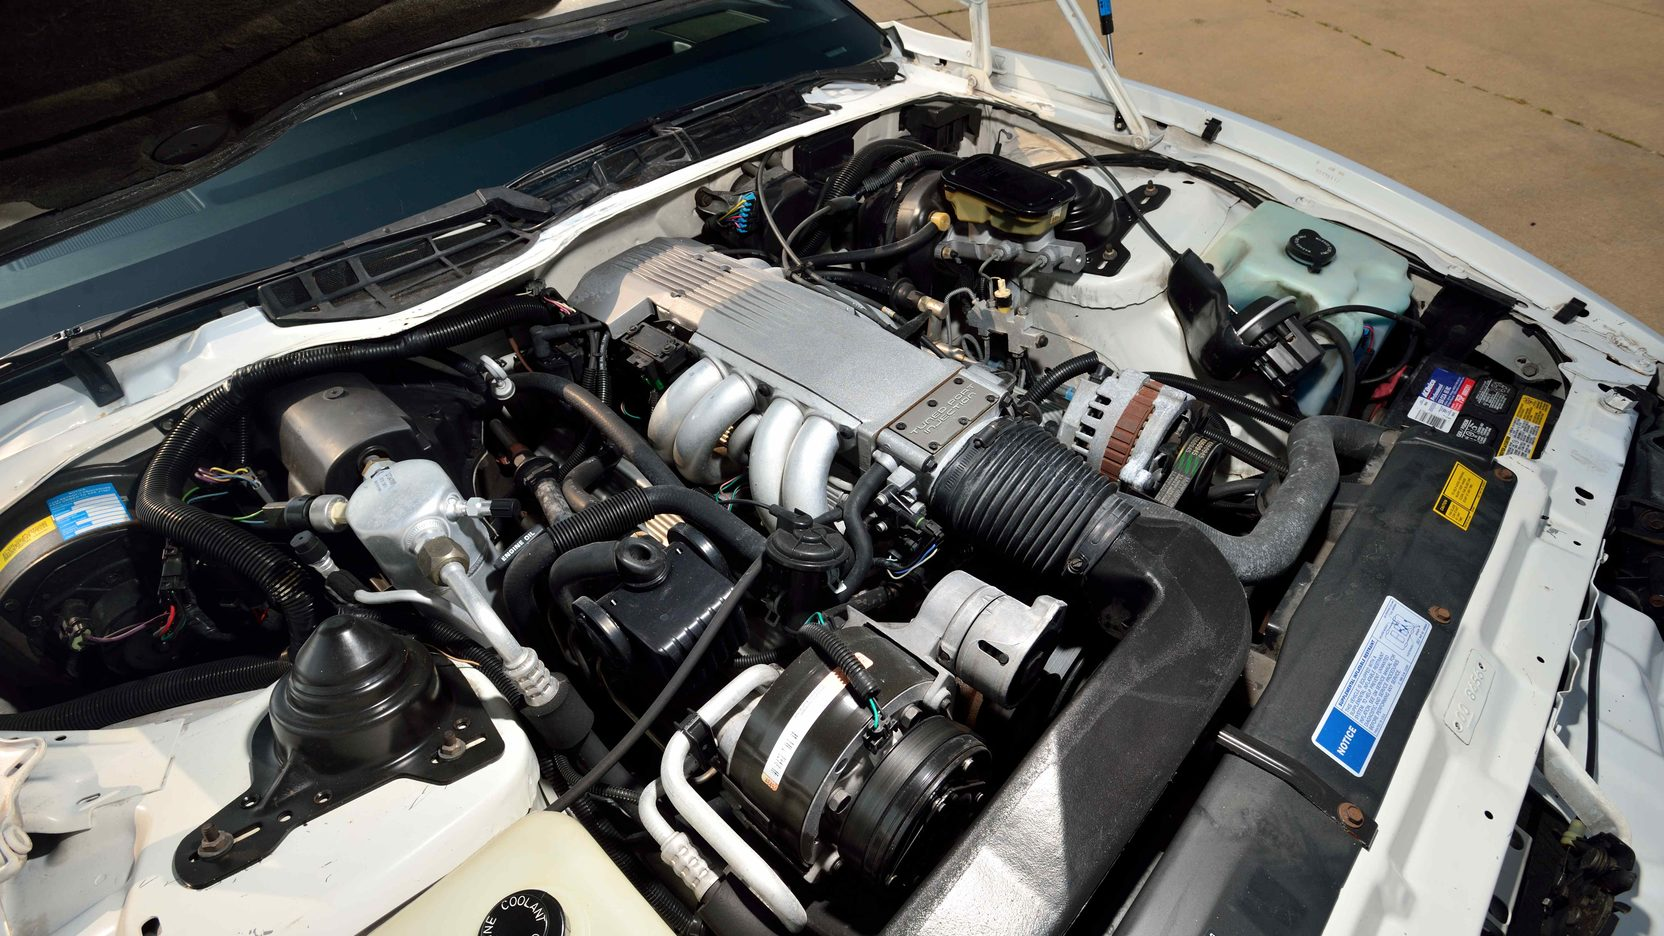 1991 Pontiac Trans Am engine